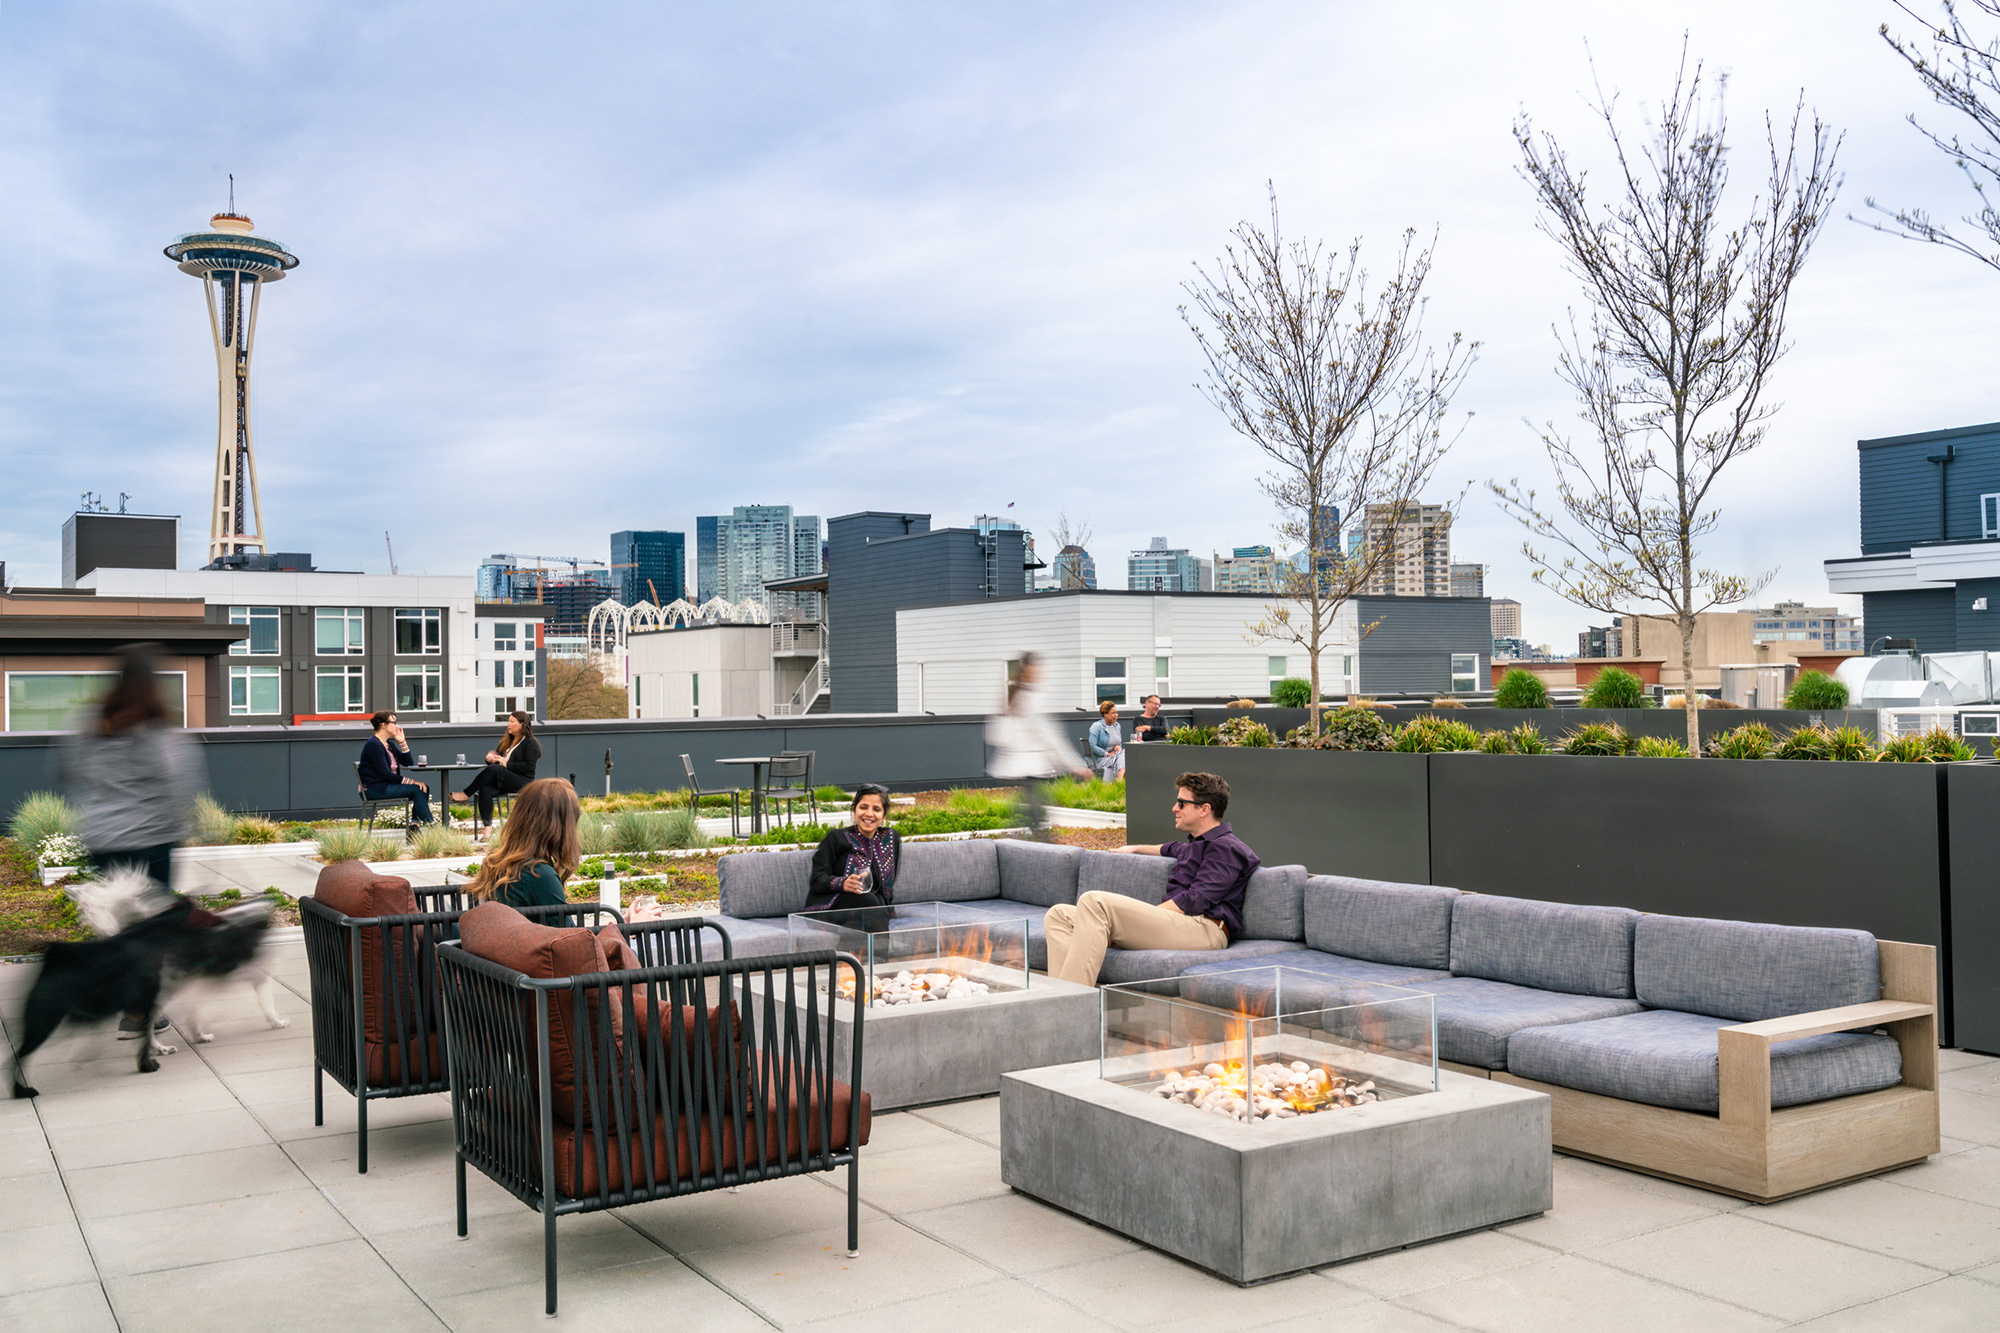 The roofdeck at Elan Uptown Flats